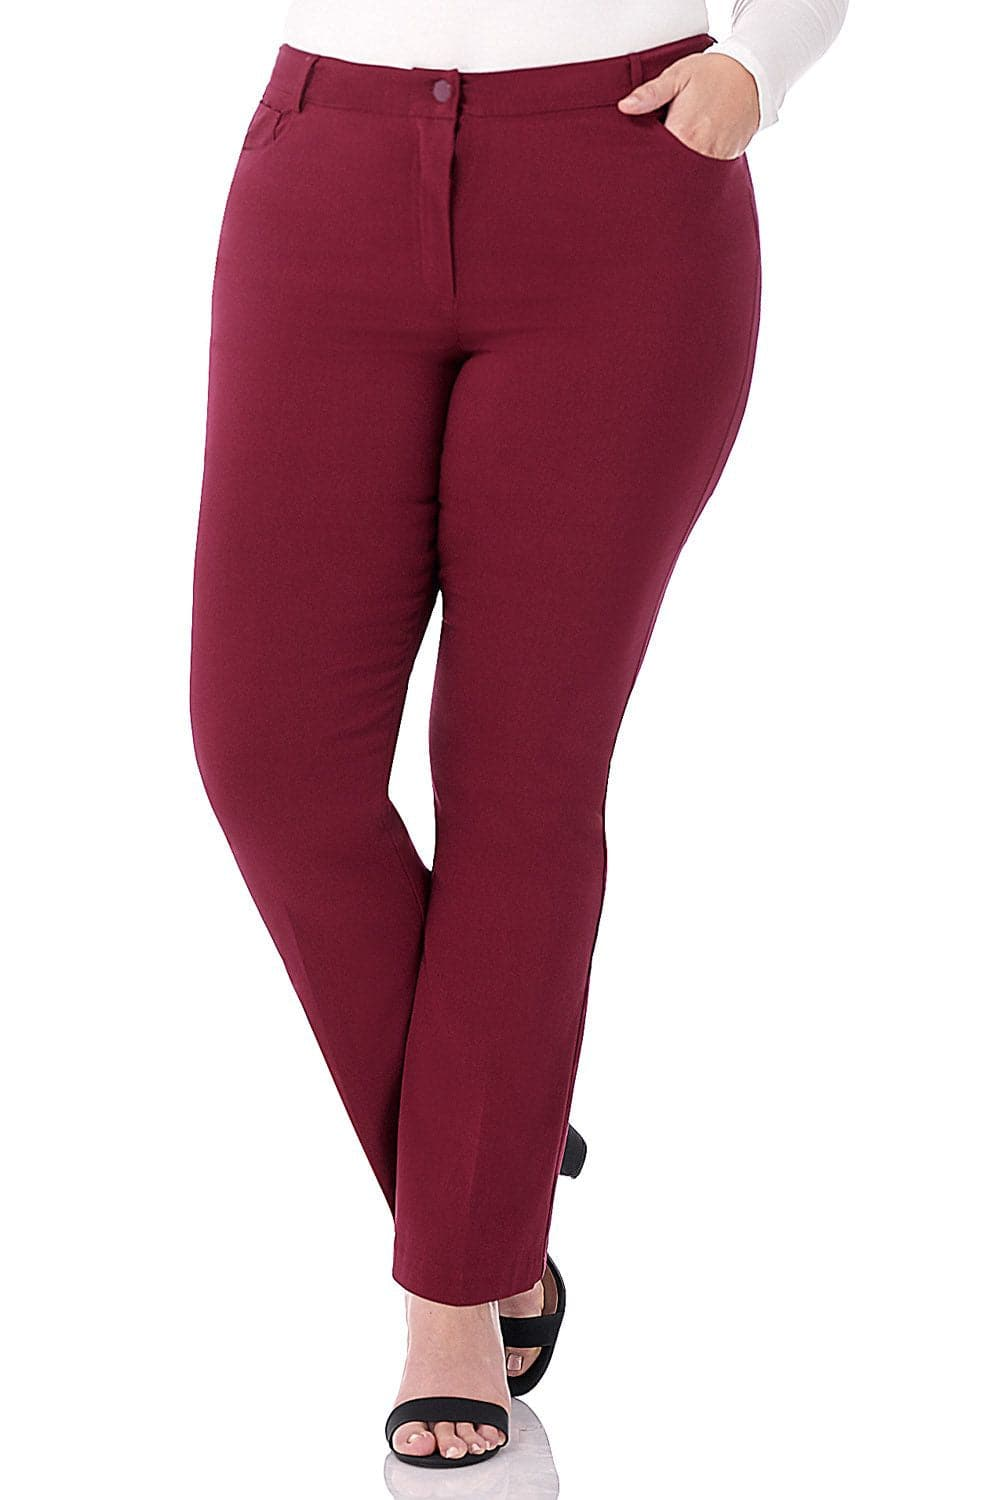 Curvy Tummy Control Pants with 5 Pockets